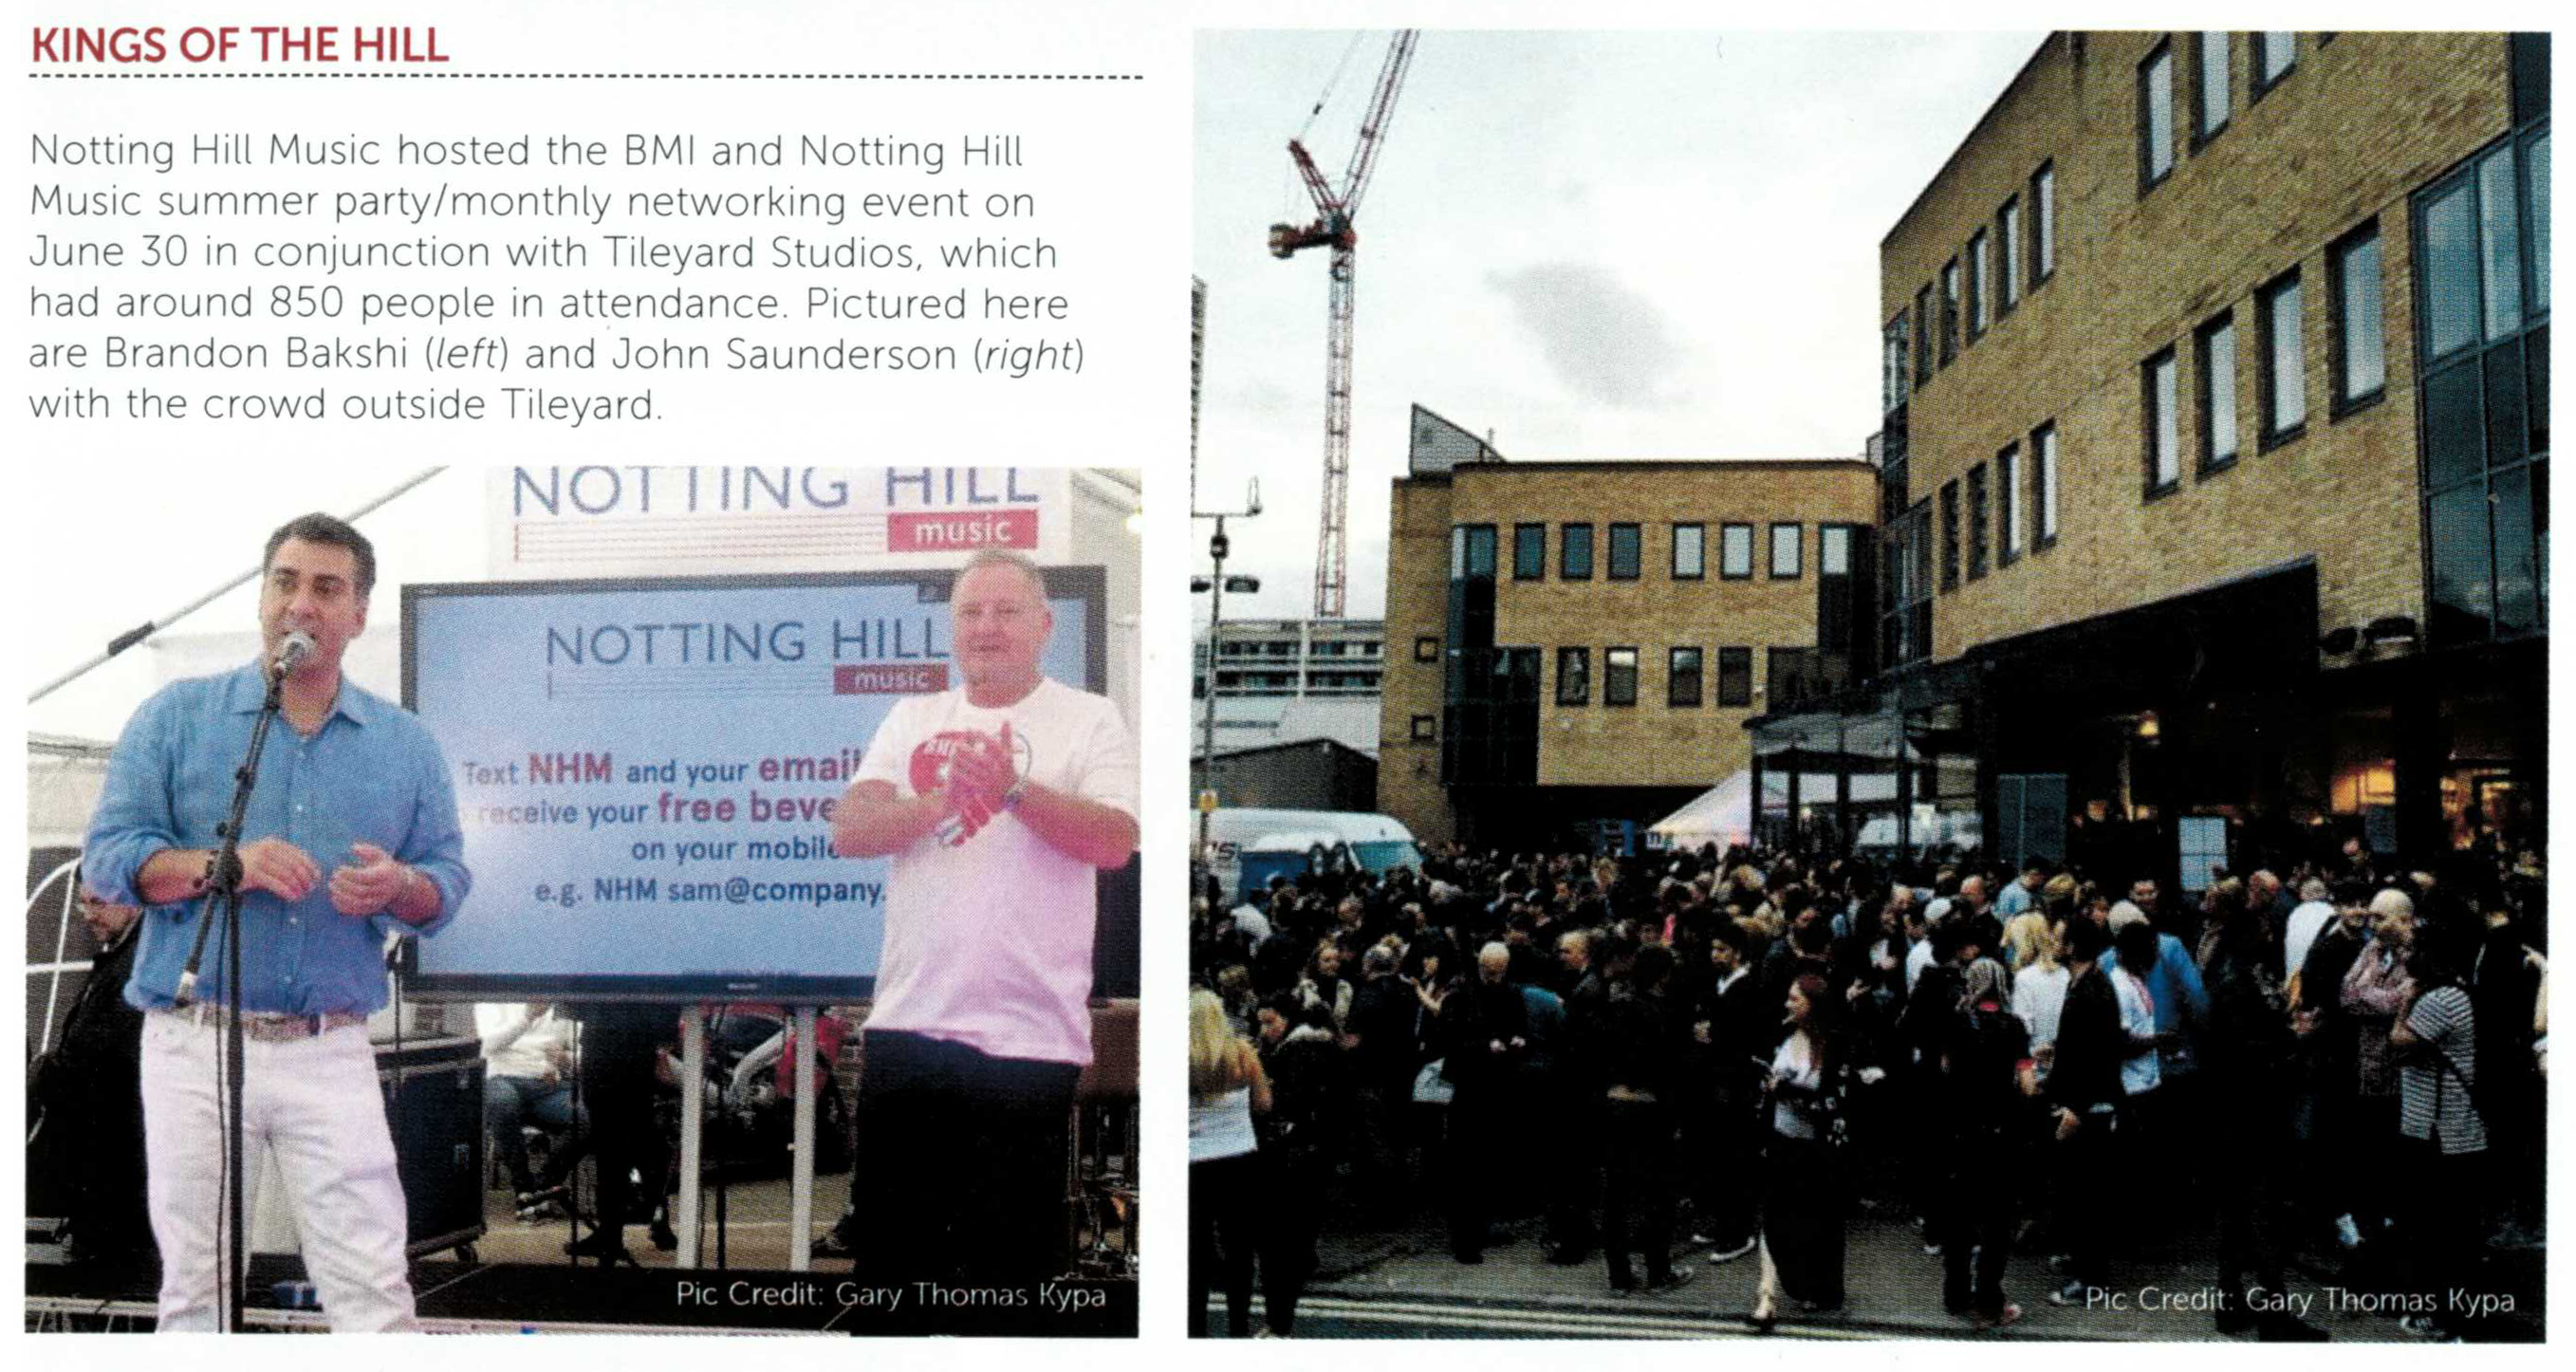 Notting Hill Music & BMI Summer event featured in Music Week